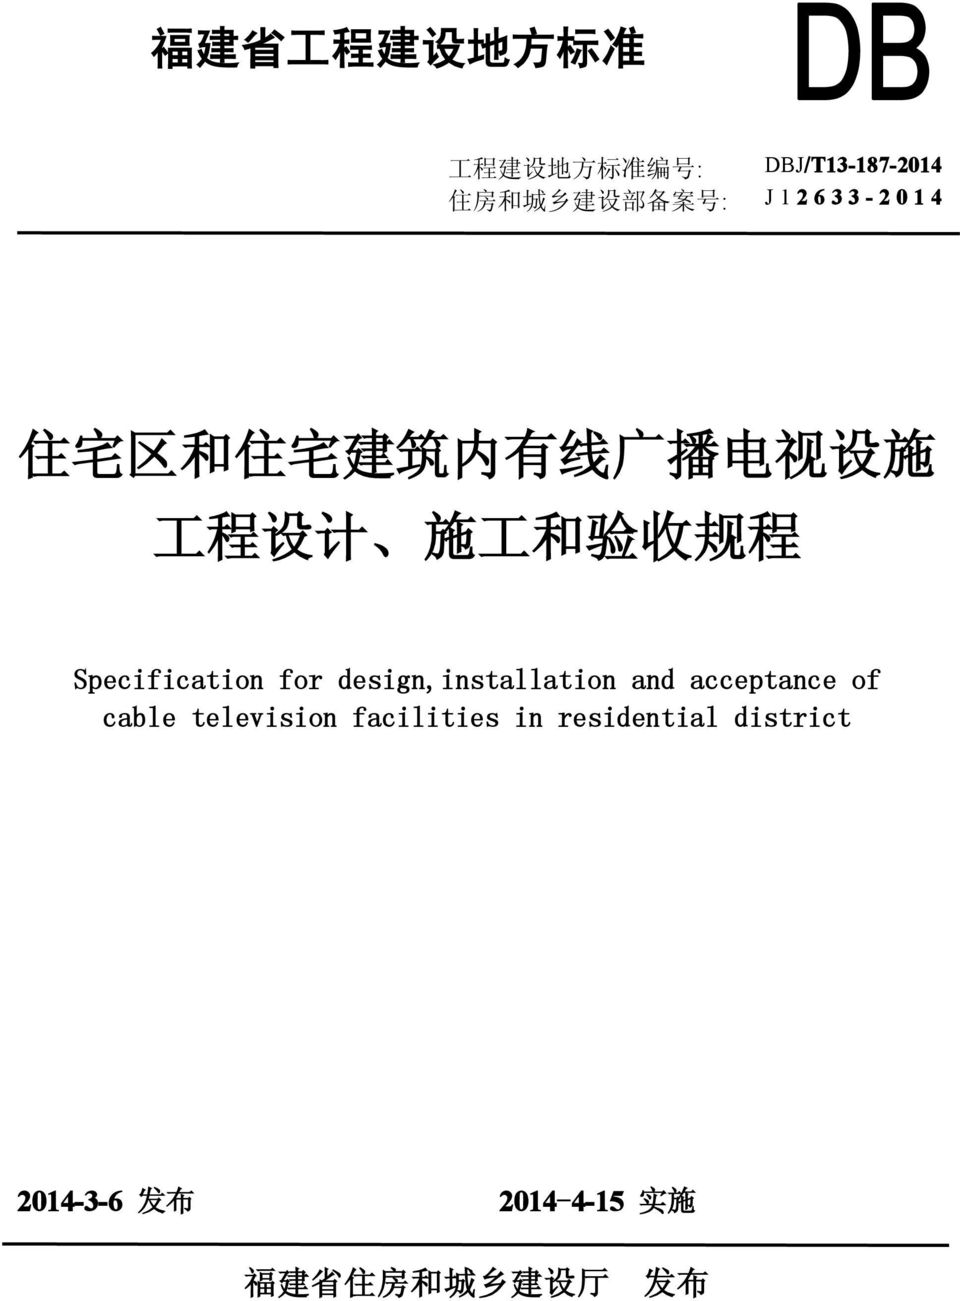 Specification for design,installation and acceptance of cable television